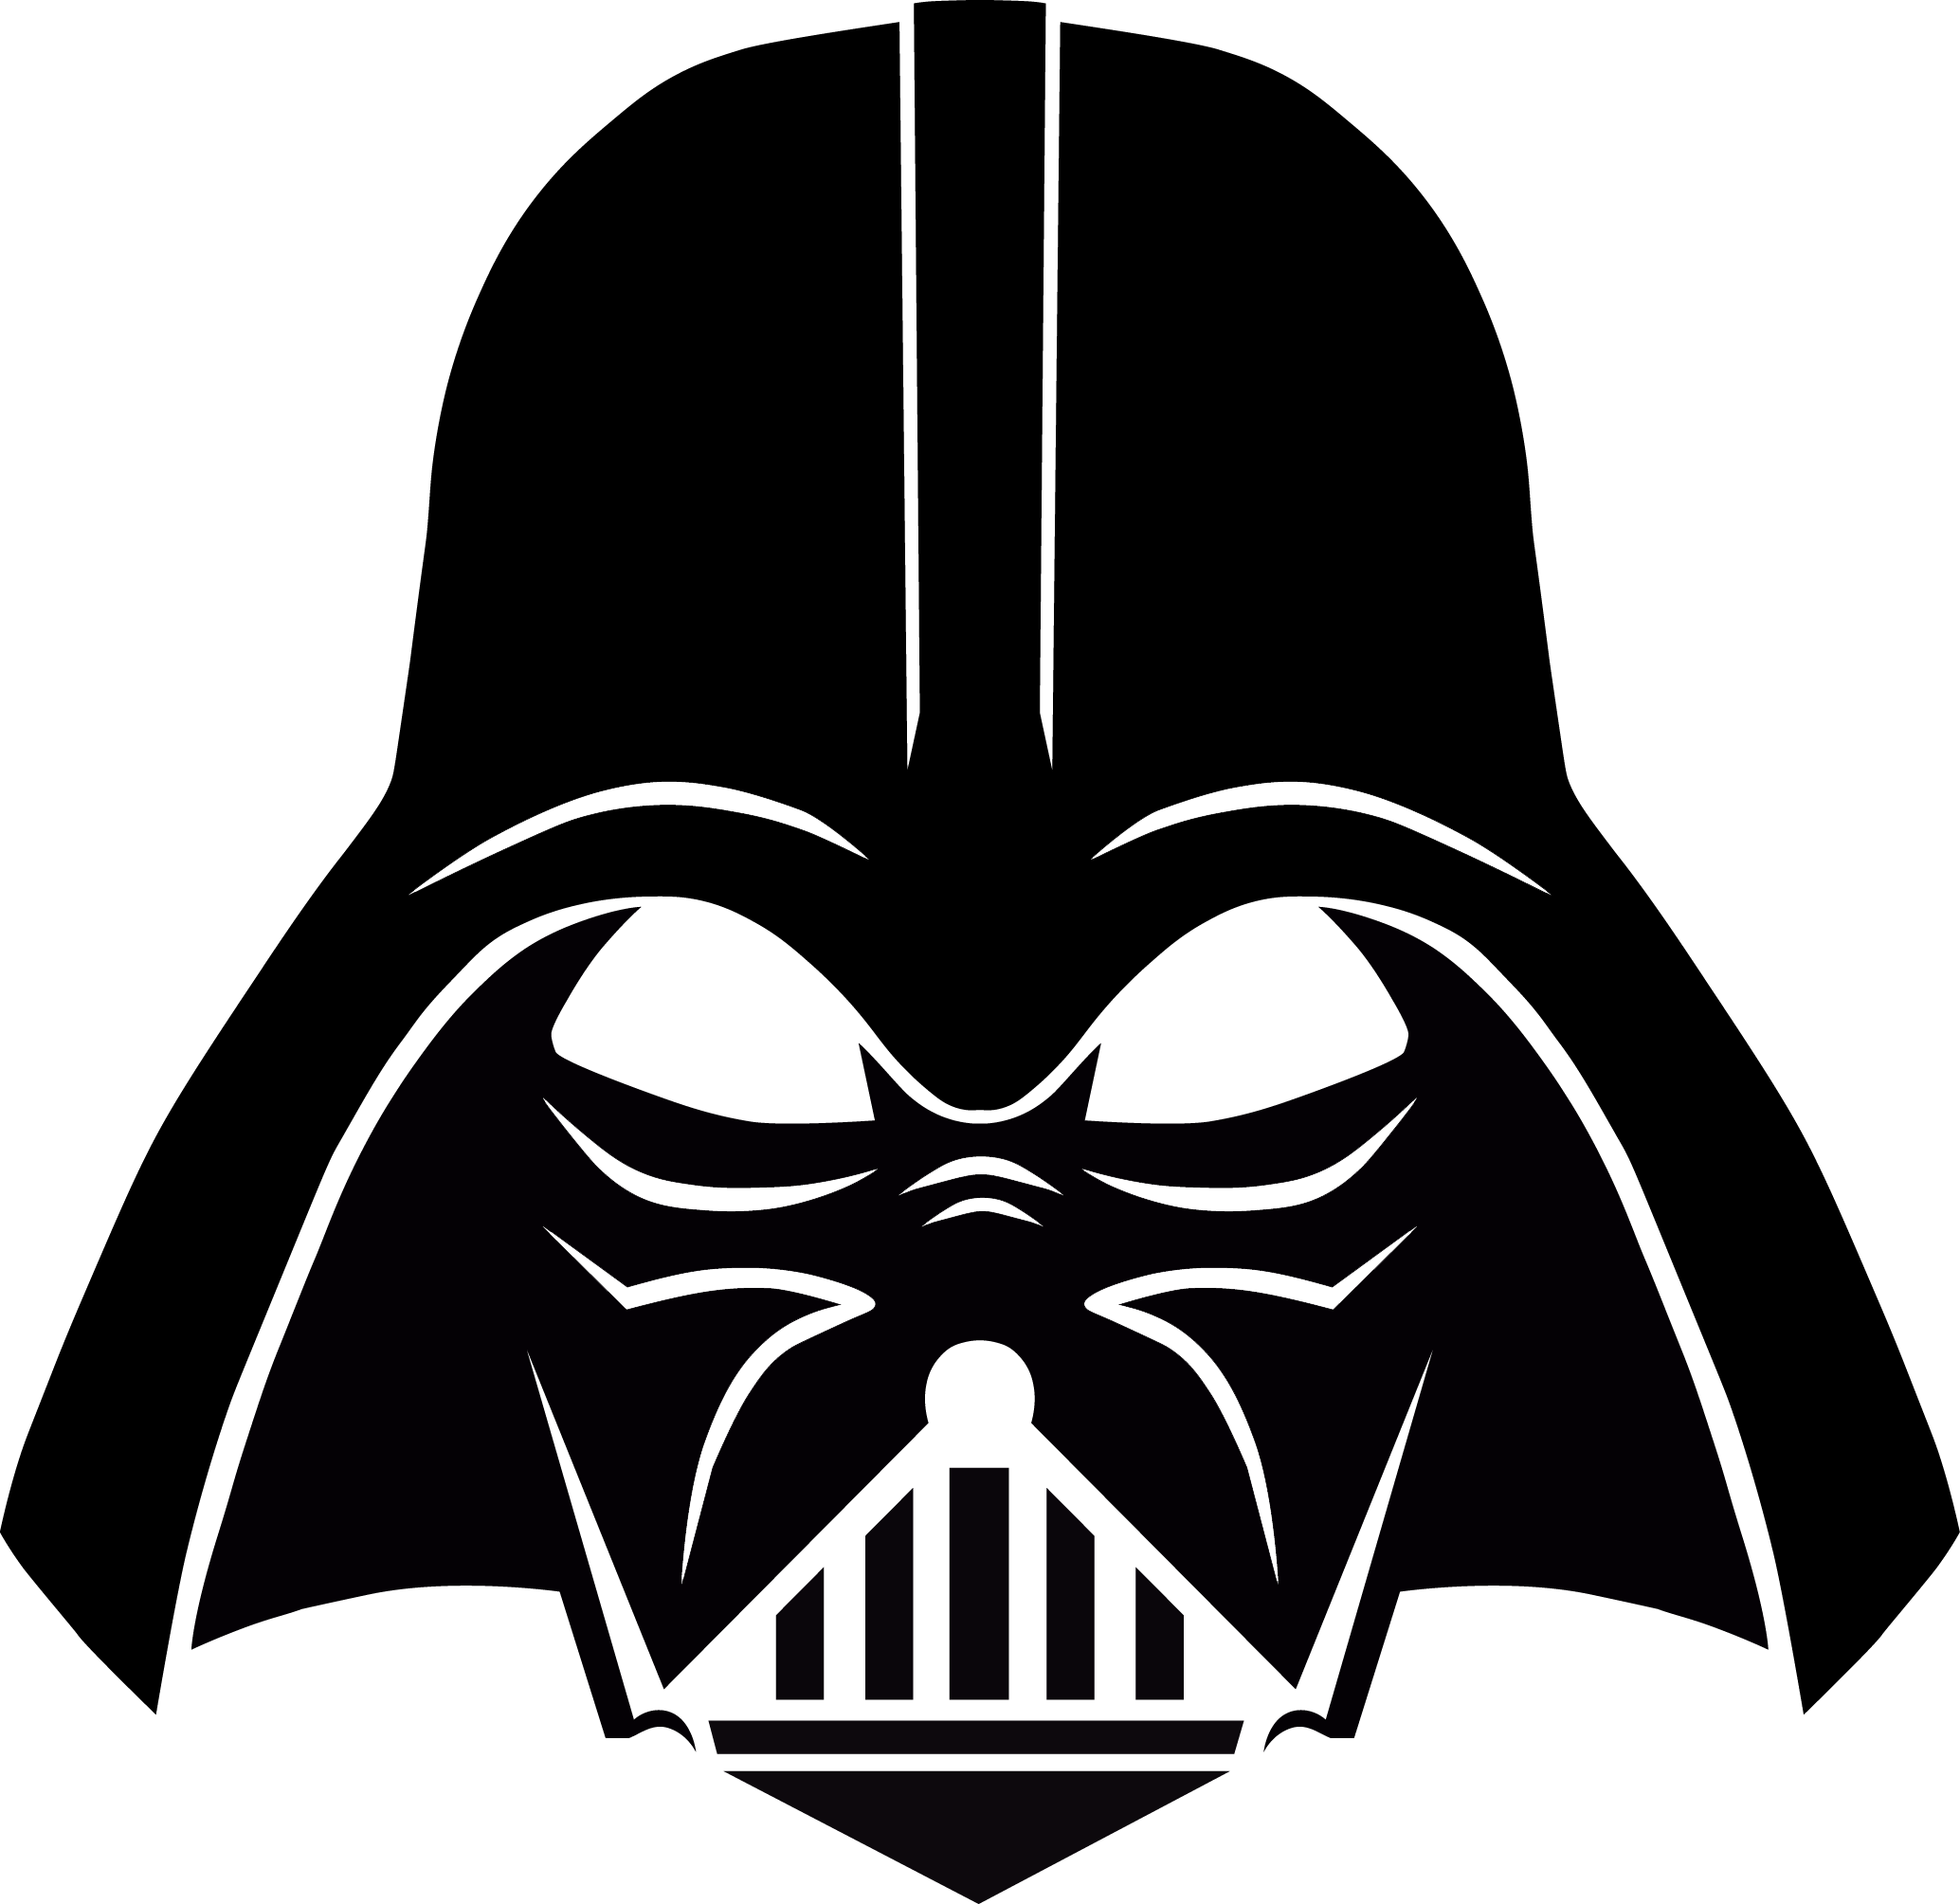 Starwars clipart stencil. Darth vader free download